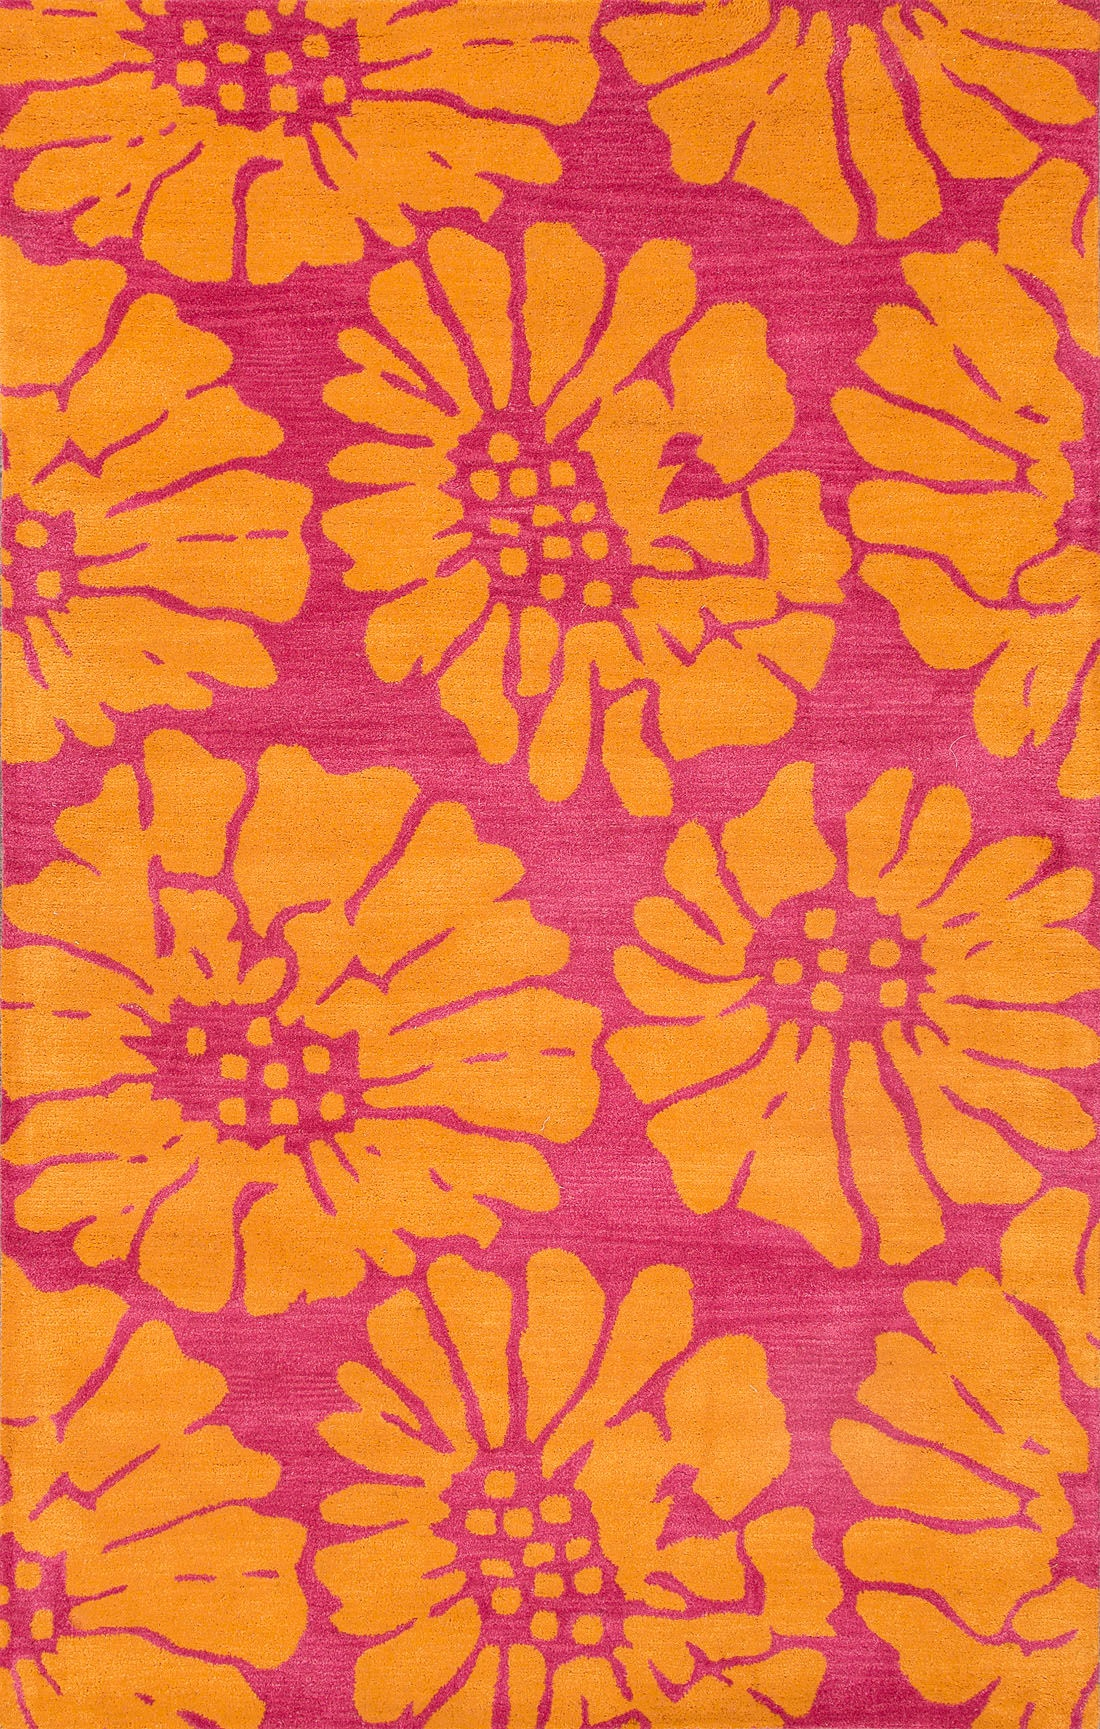 Jaipur Rugs Floor Coverings Hand Tufted Durable Wool Pink Orange